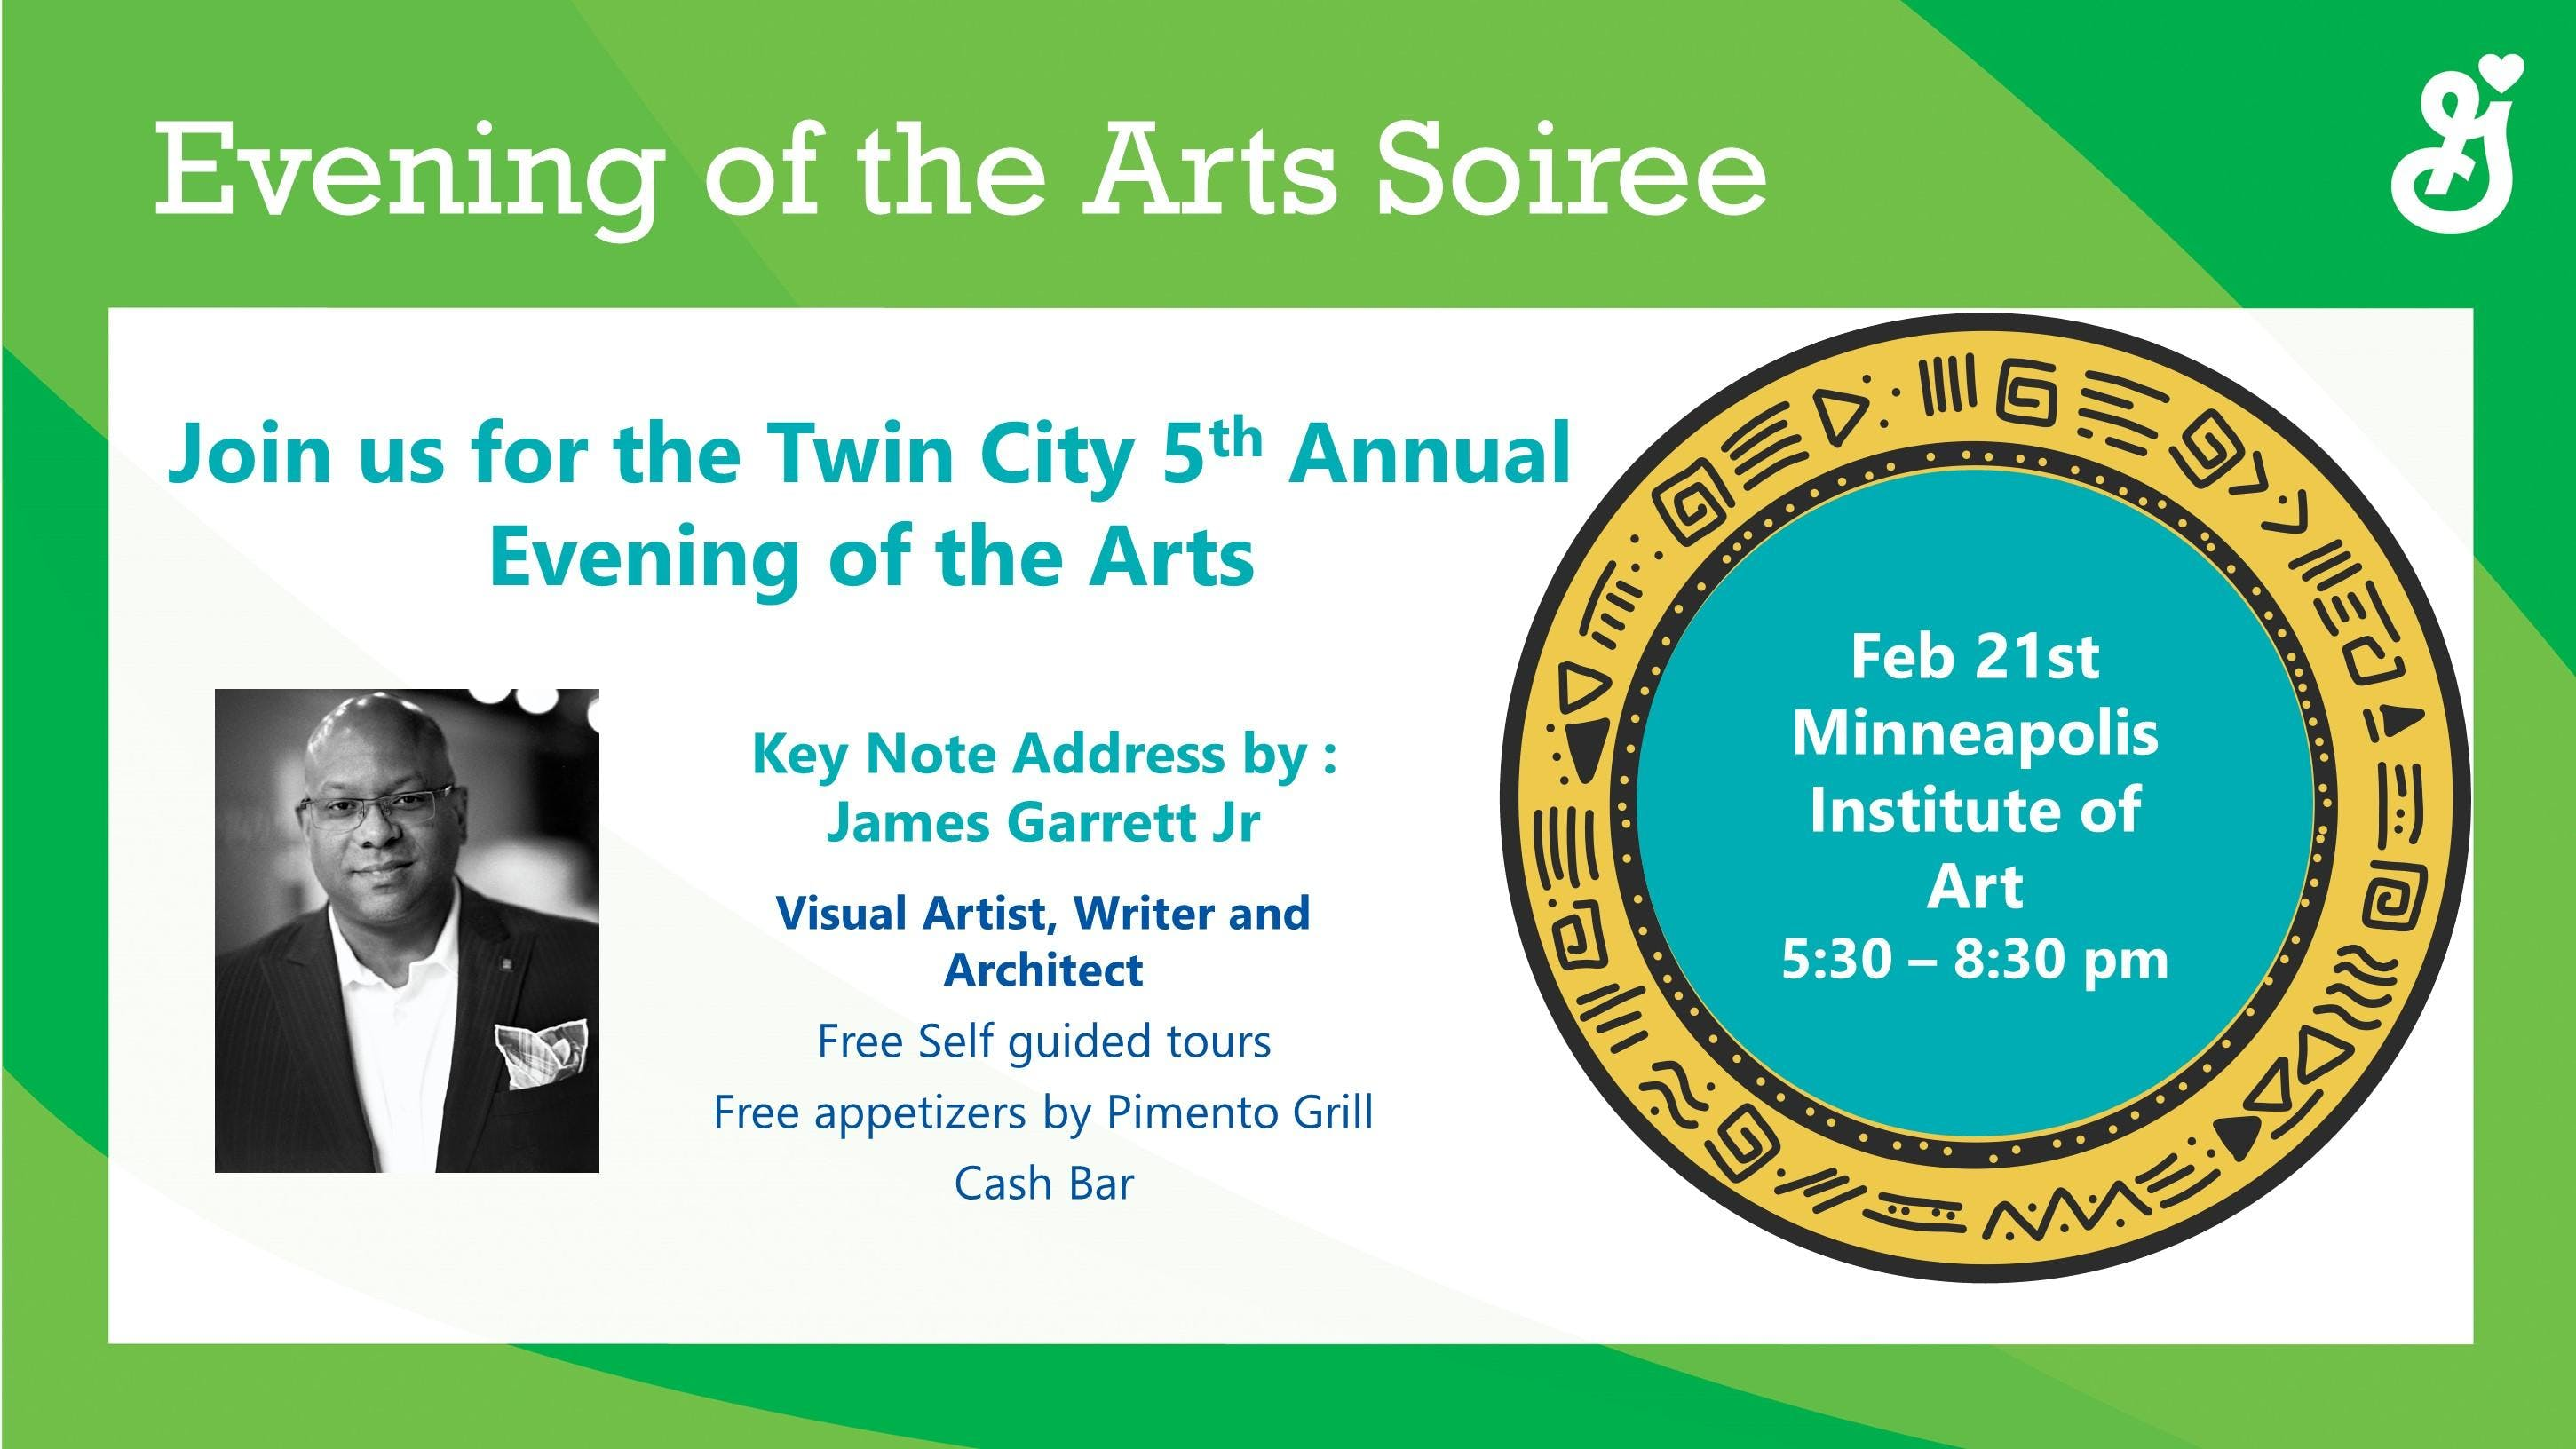 2019 Black History Month Evening of the Arts